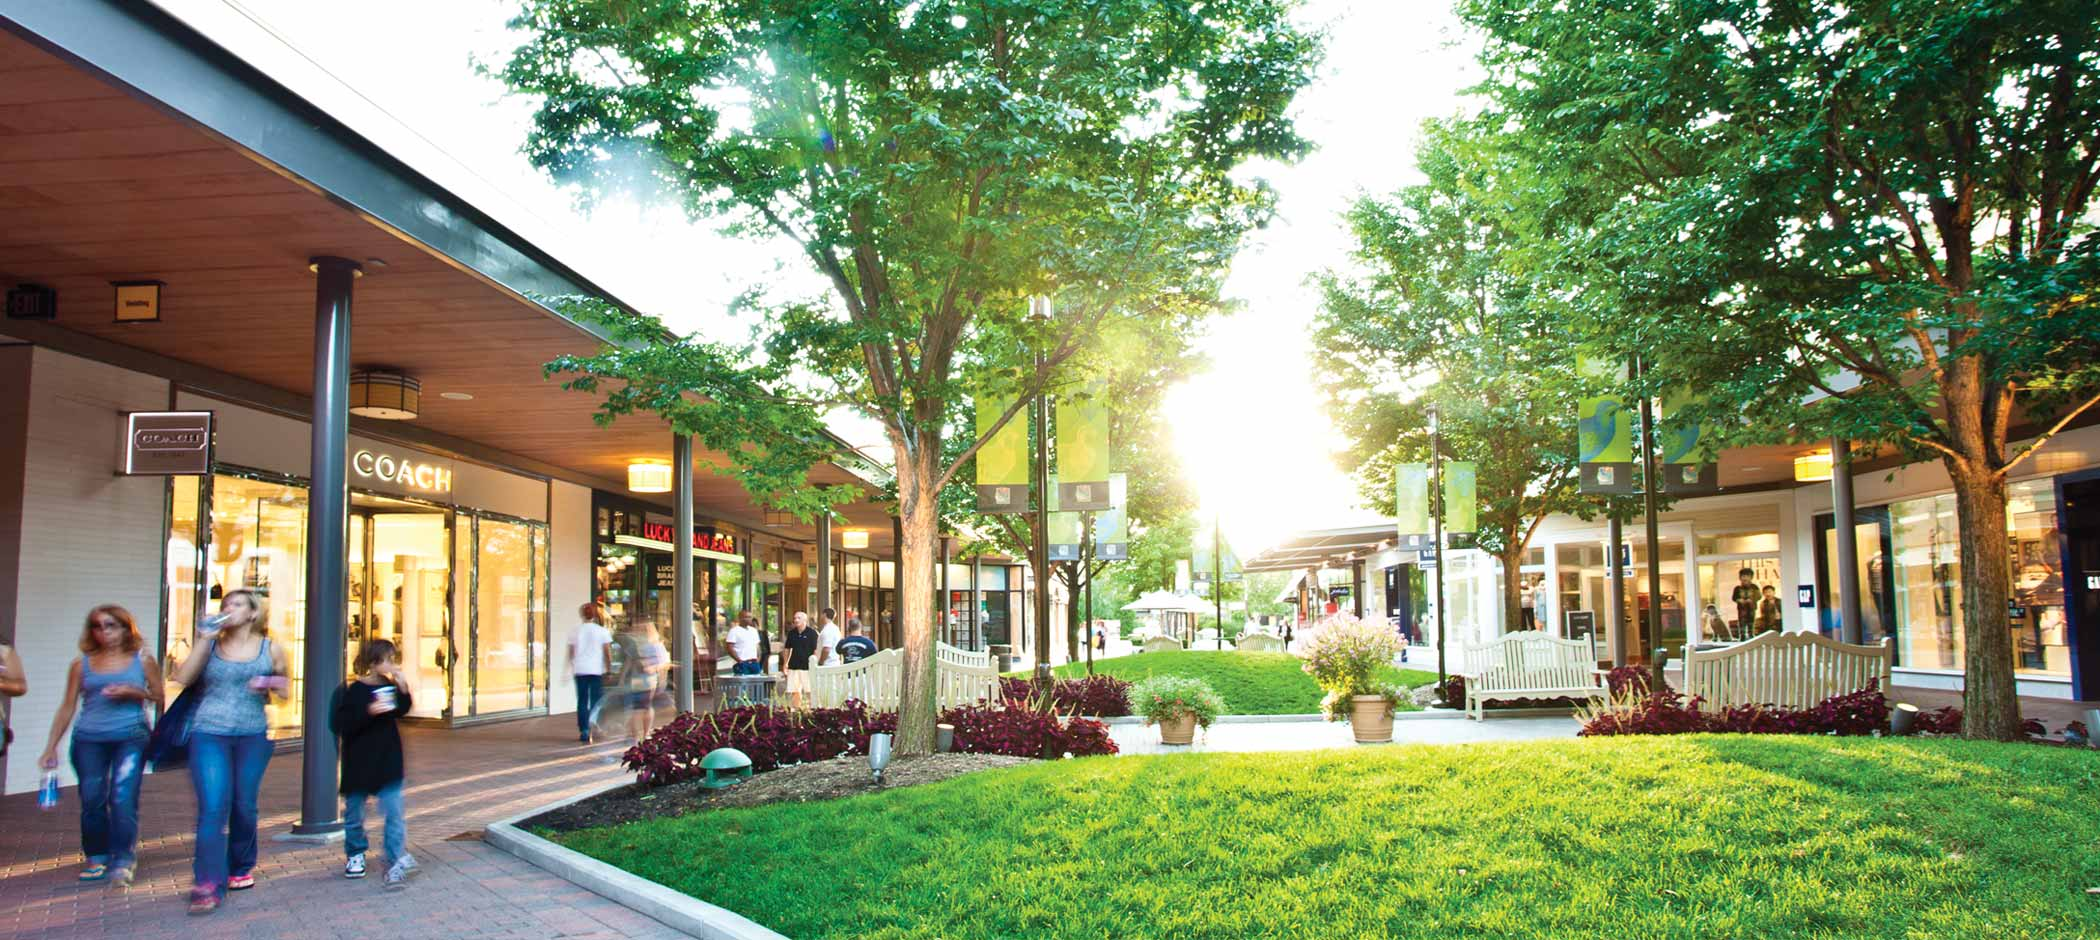 The Mall at Partridge Creek stores and restaurants